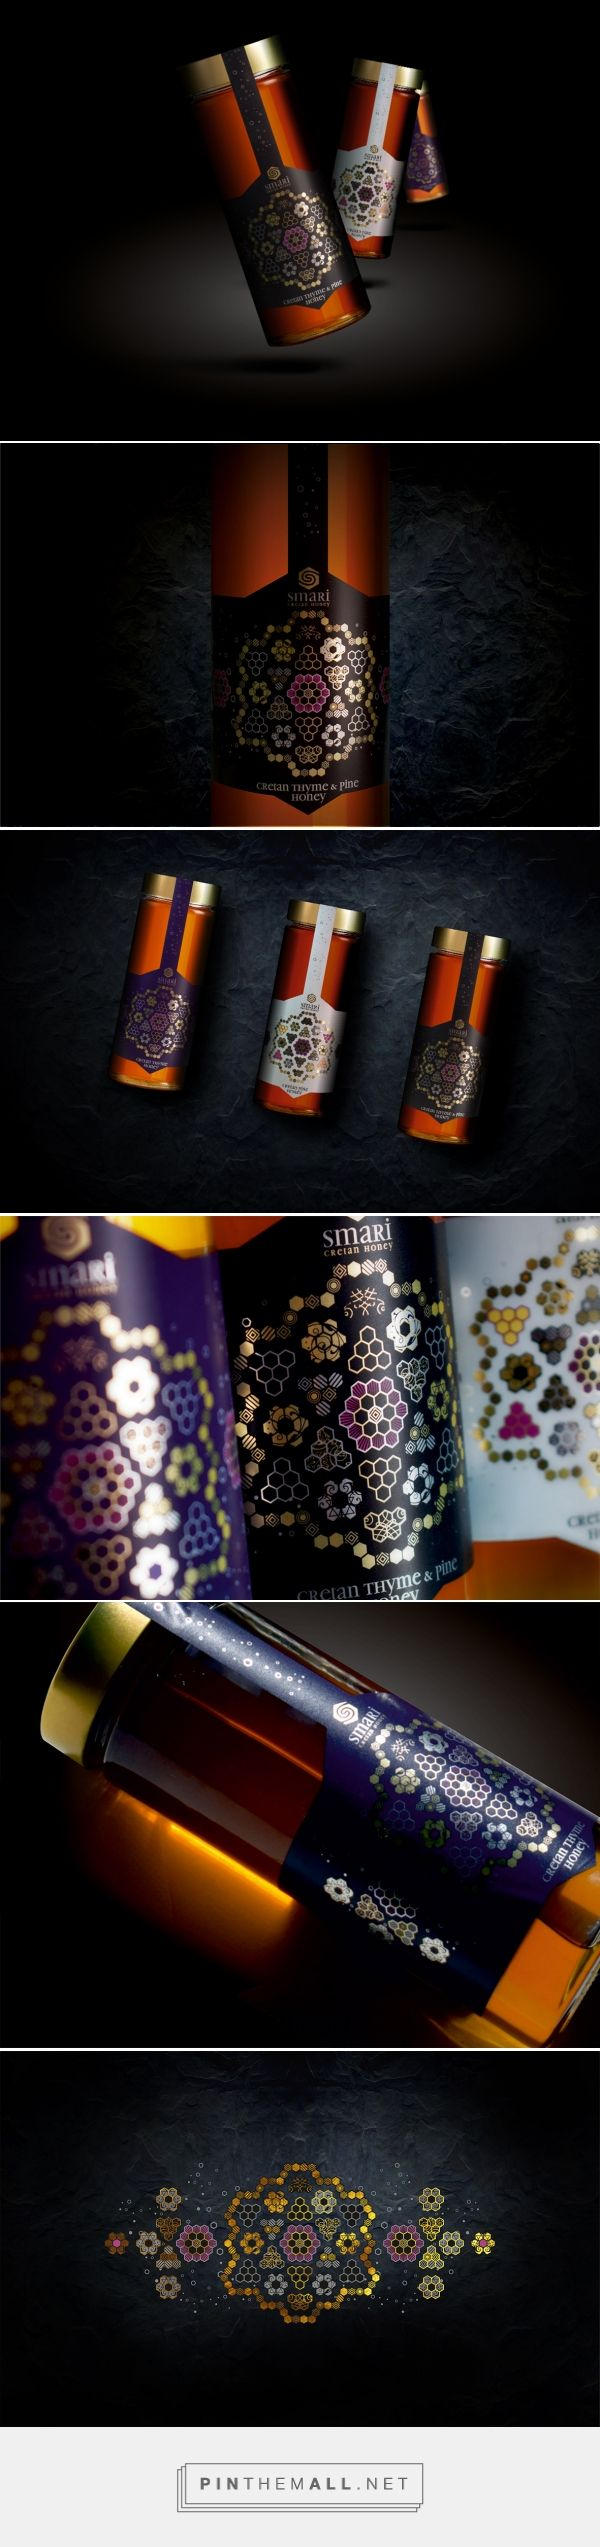 Smari Cretan Honey - Packaging of the World - Creative Package Design Gallery - http://www.packagingoftheworld.com/2018/01/smari-cretan-honey.html